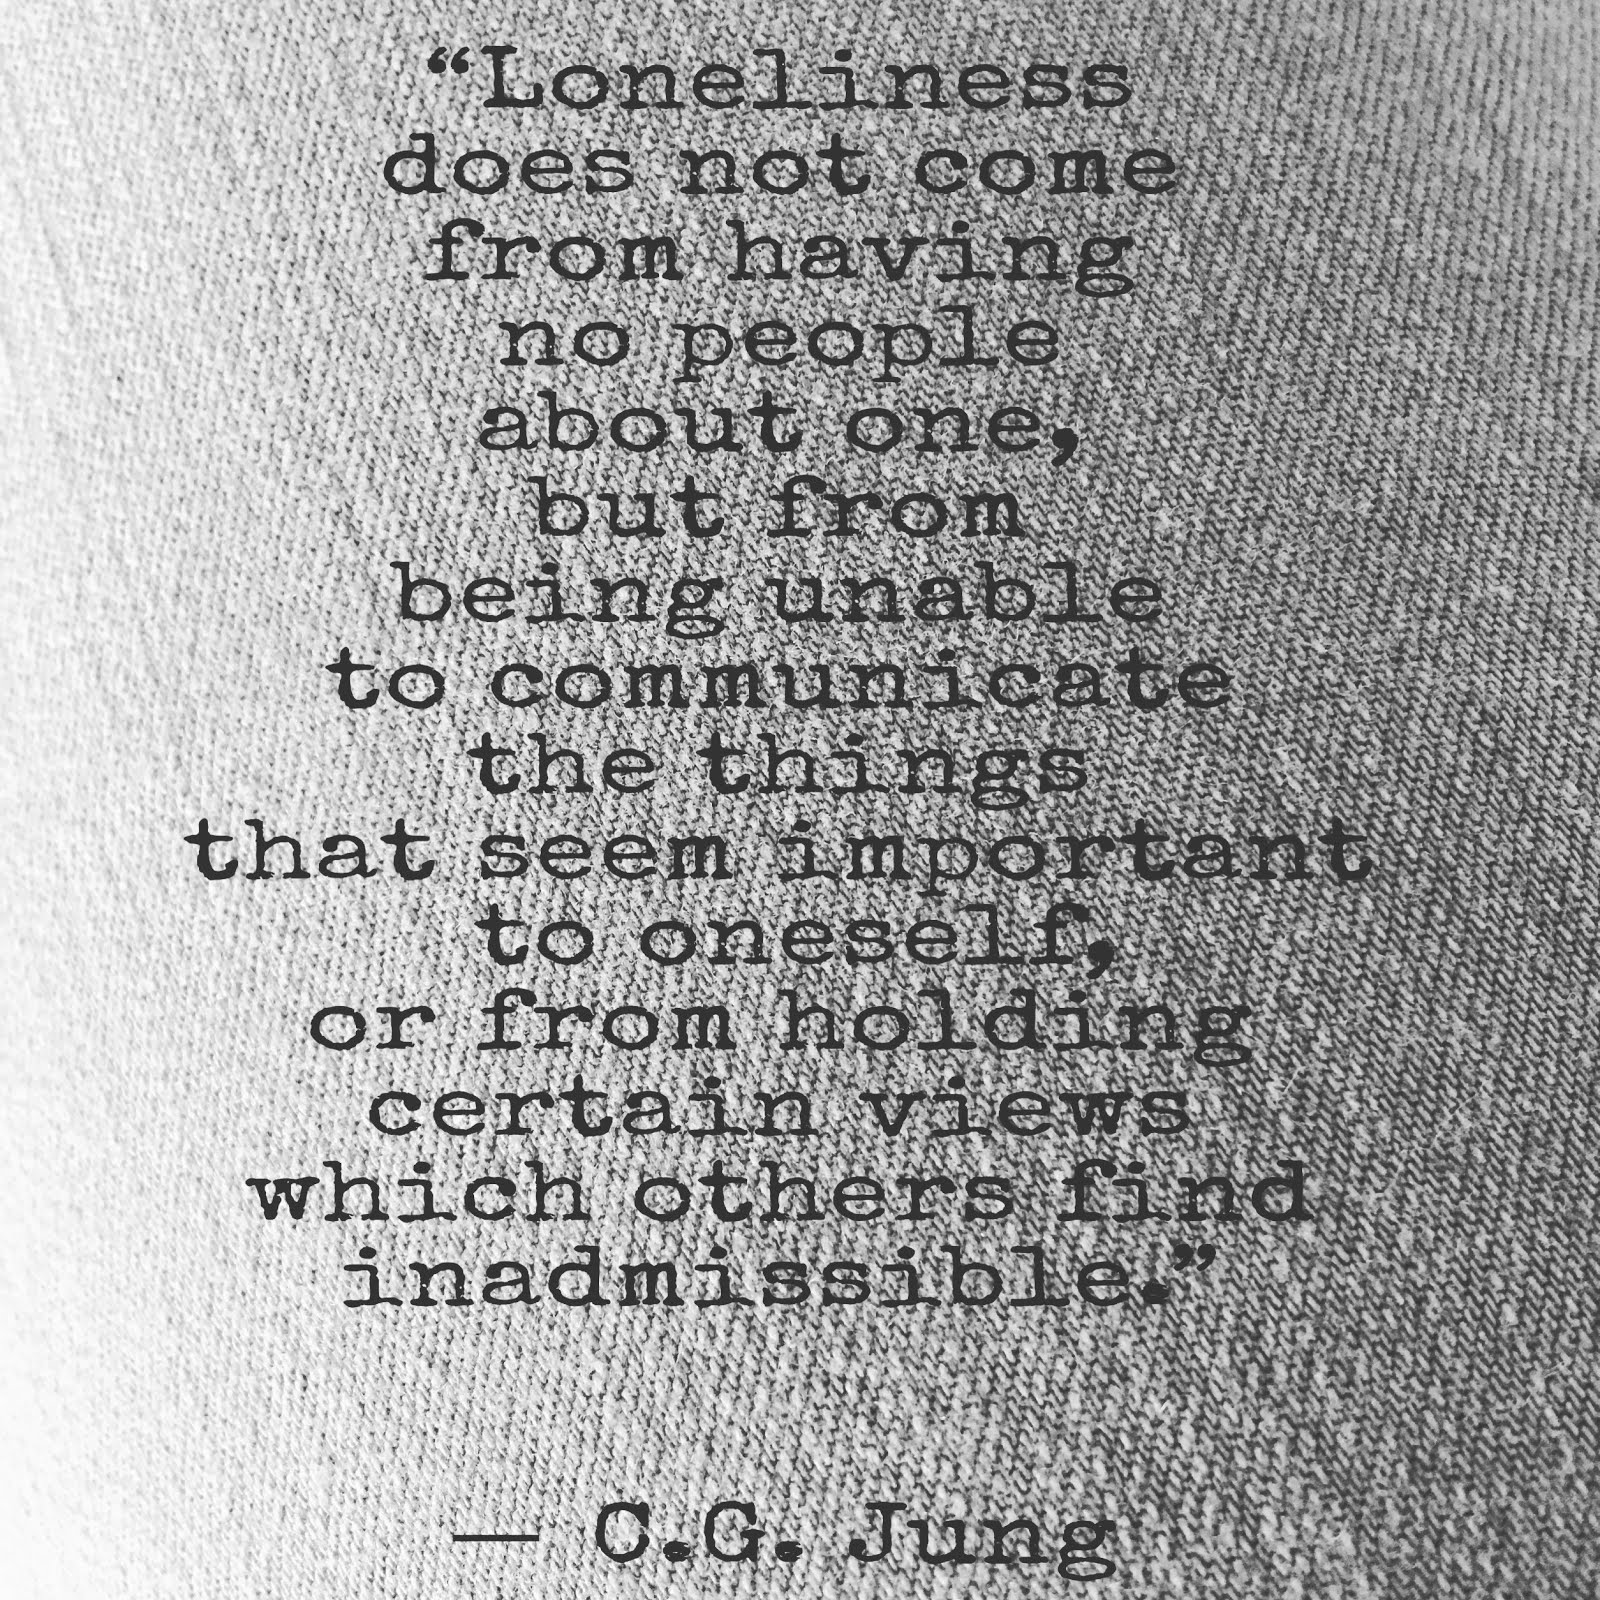 About Loneliness